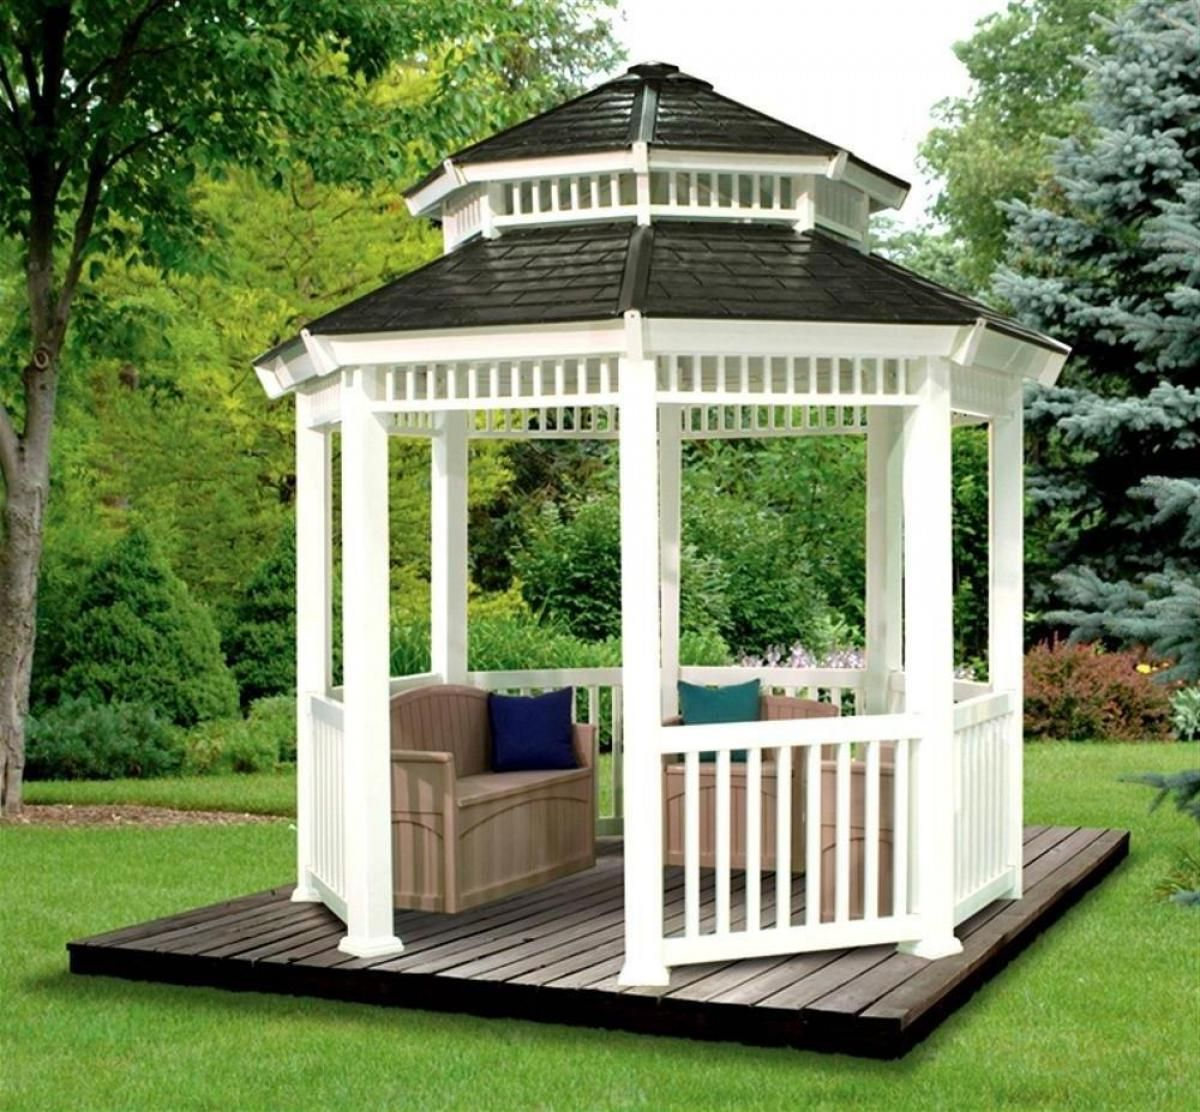 Charming White Gazebo Canopy Decors With Graded Curve